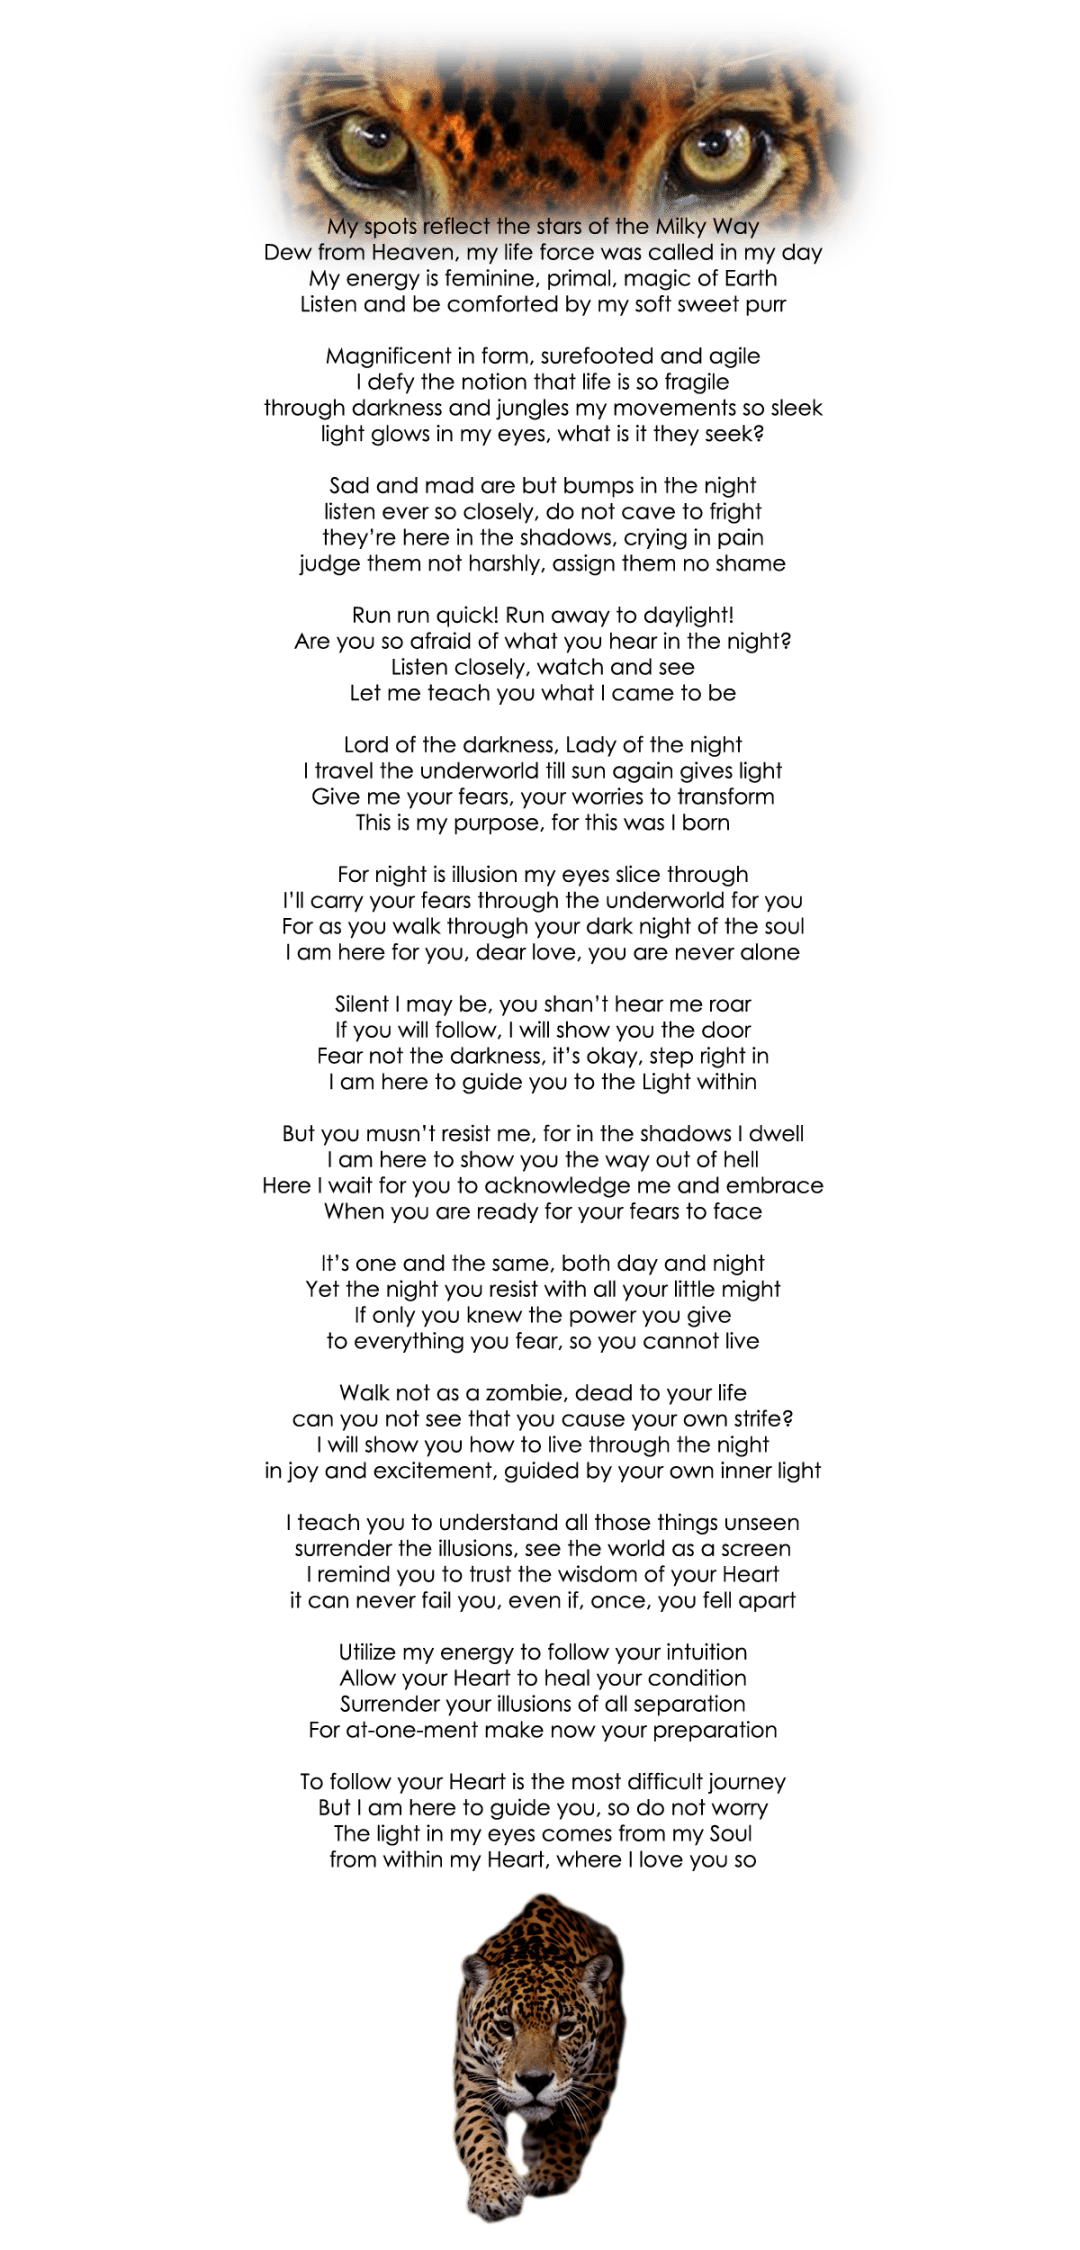 jaguar poem by patricia reed clear2